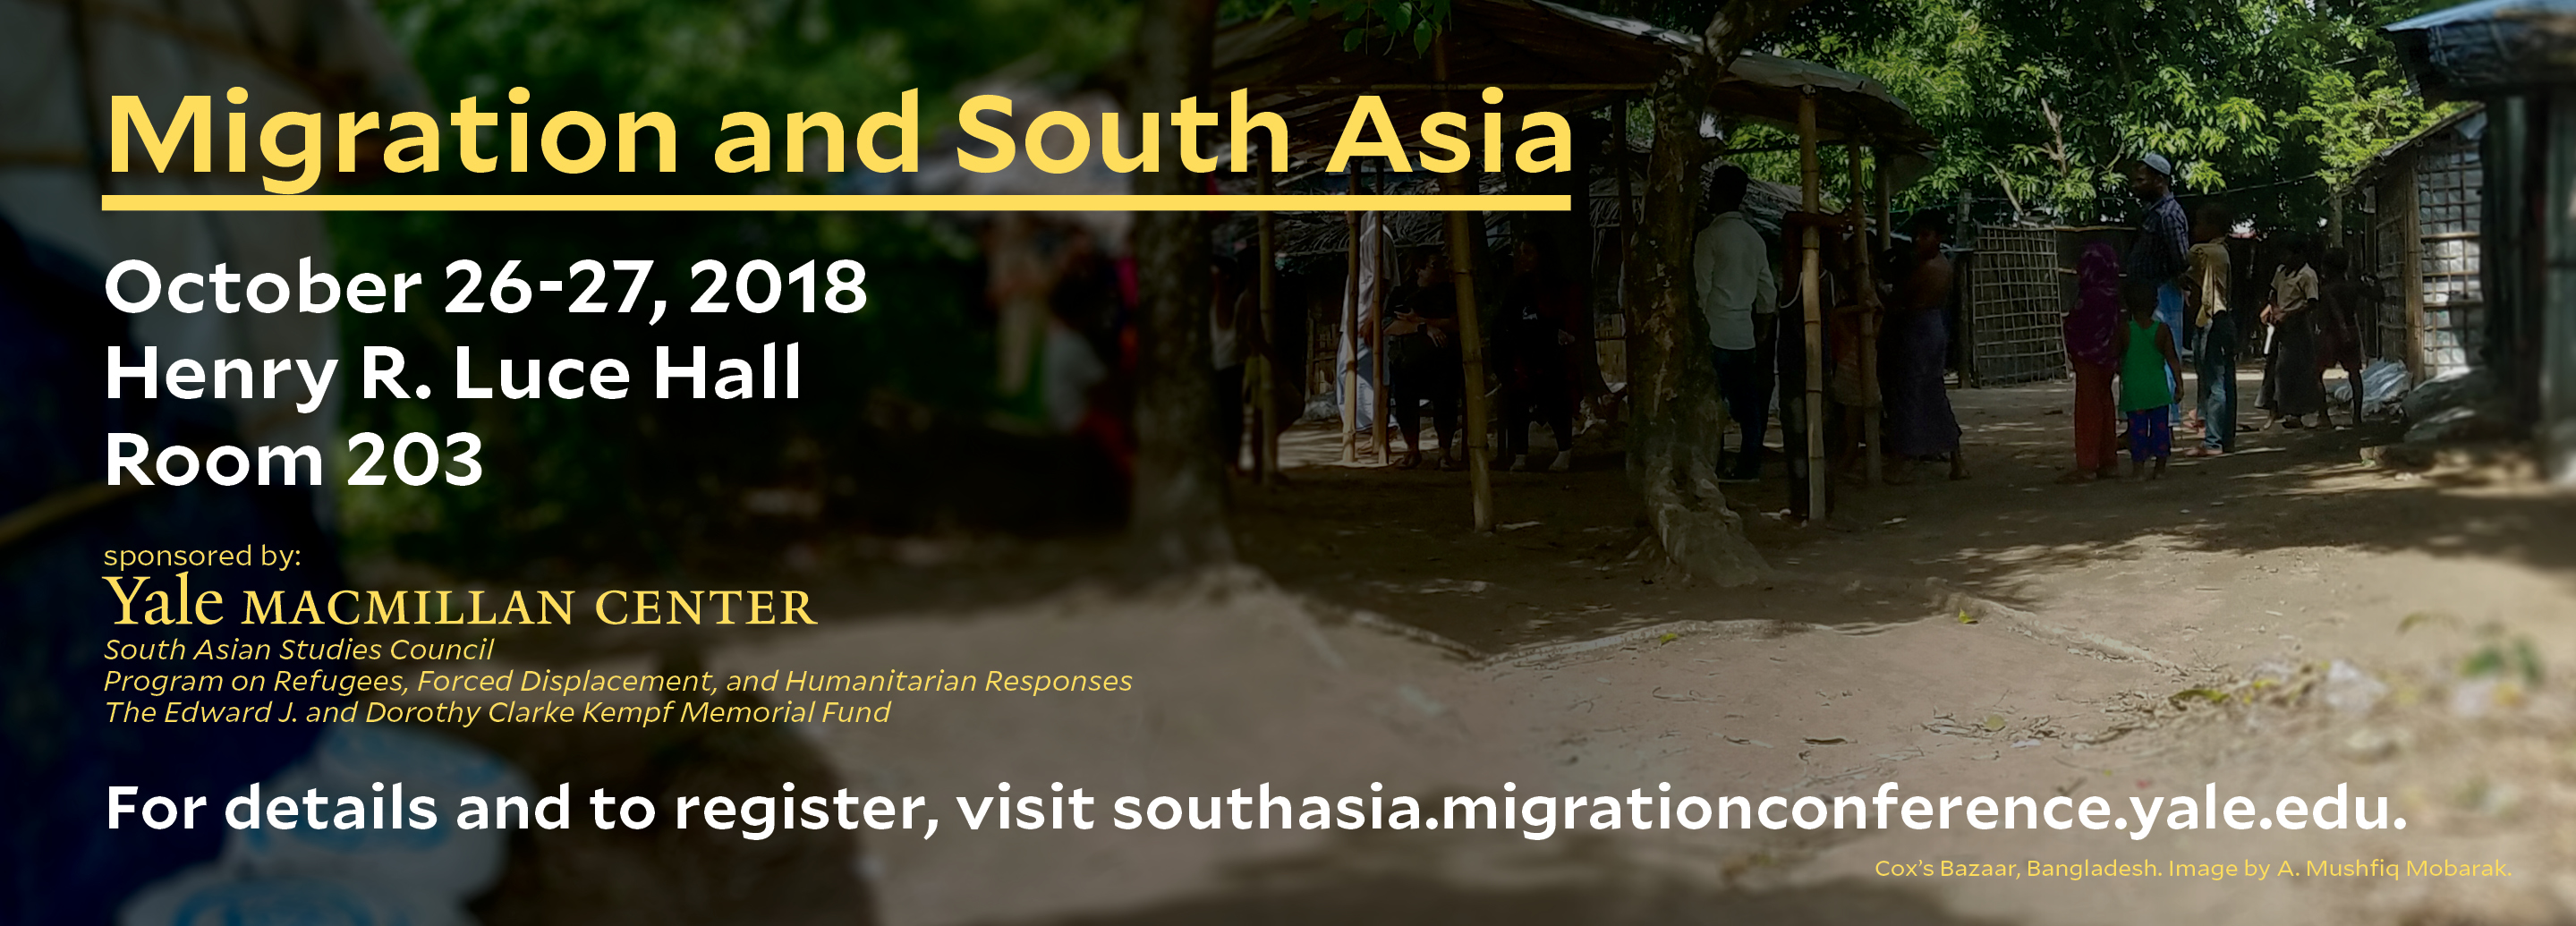 Migration and South Asia Conference